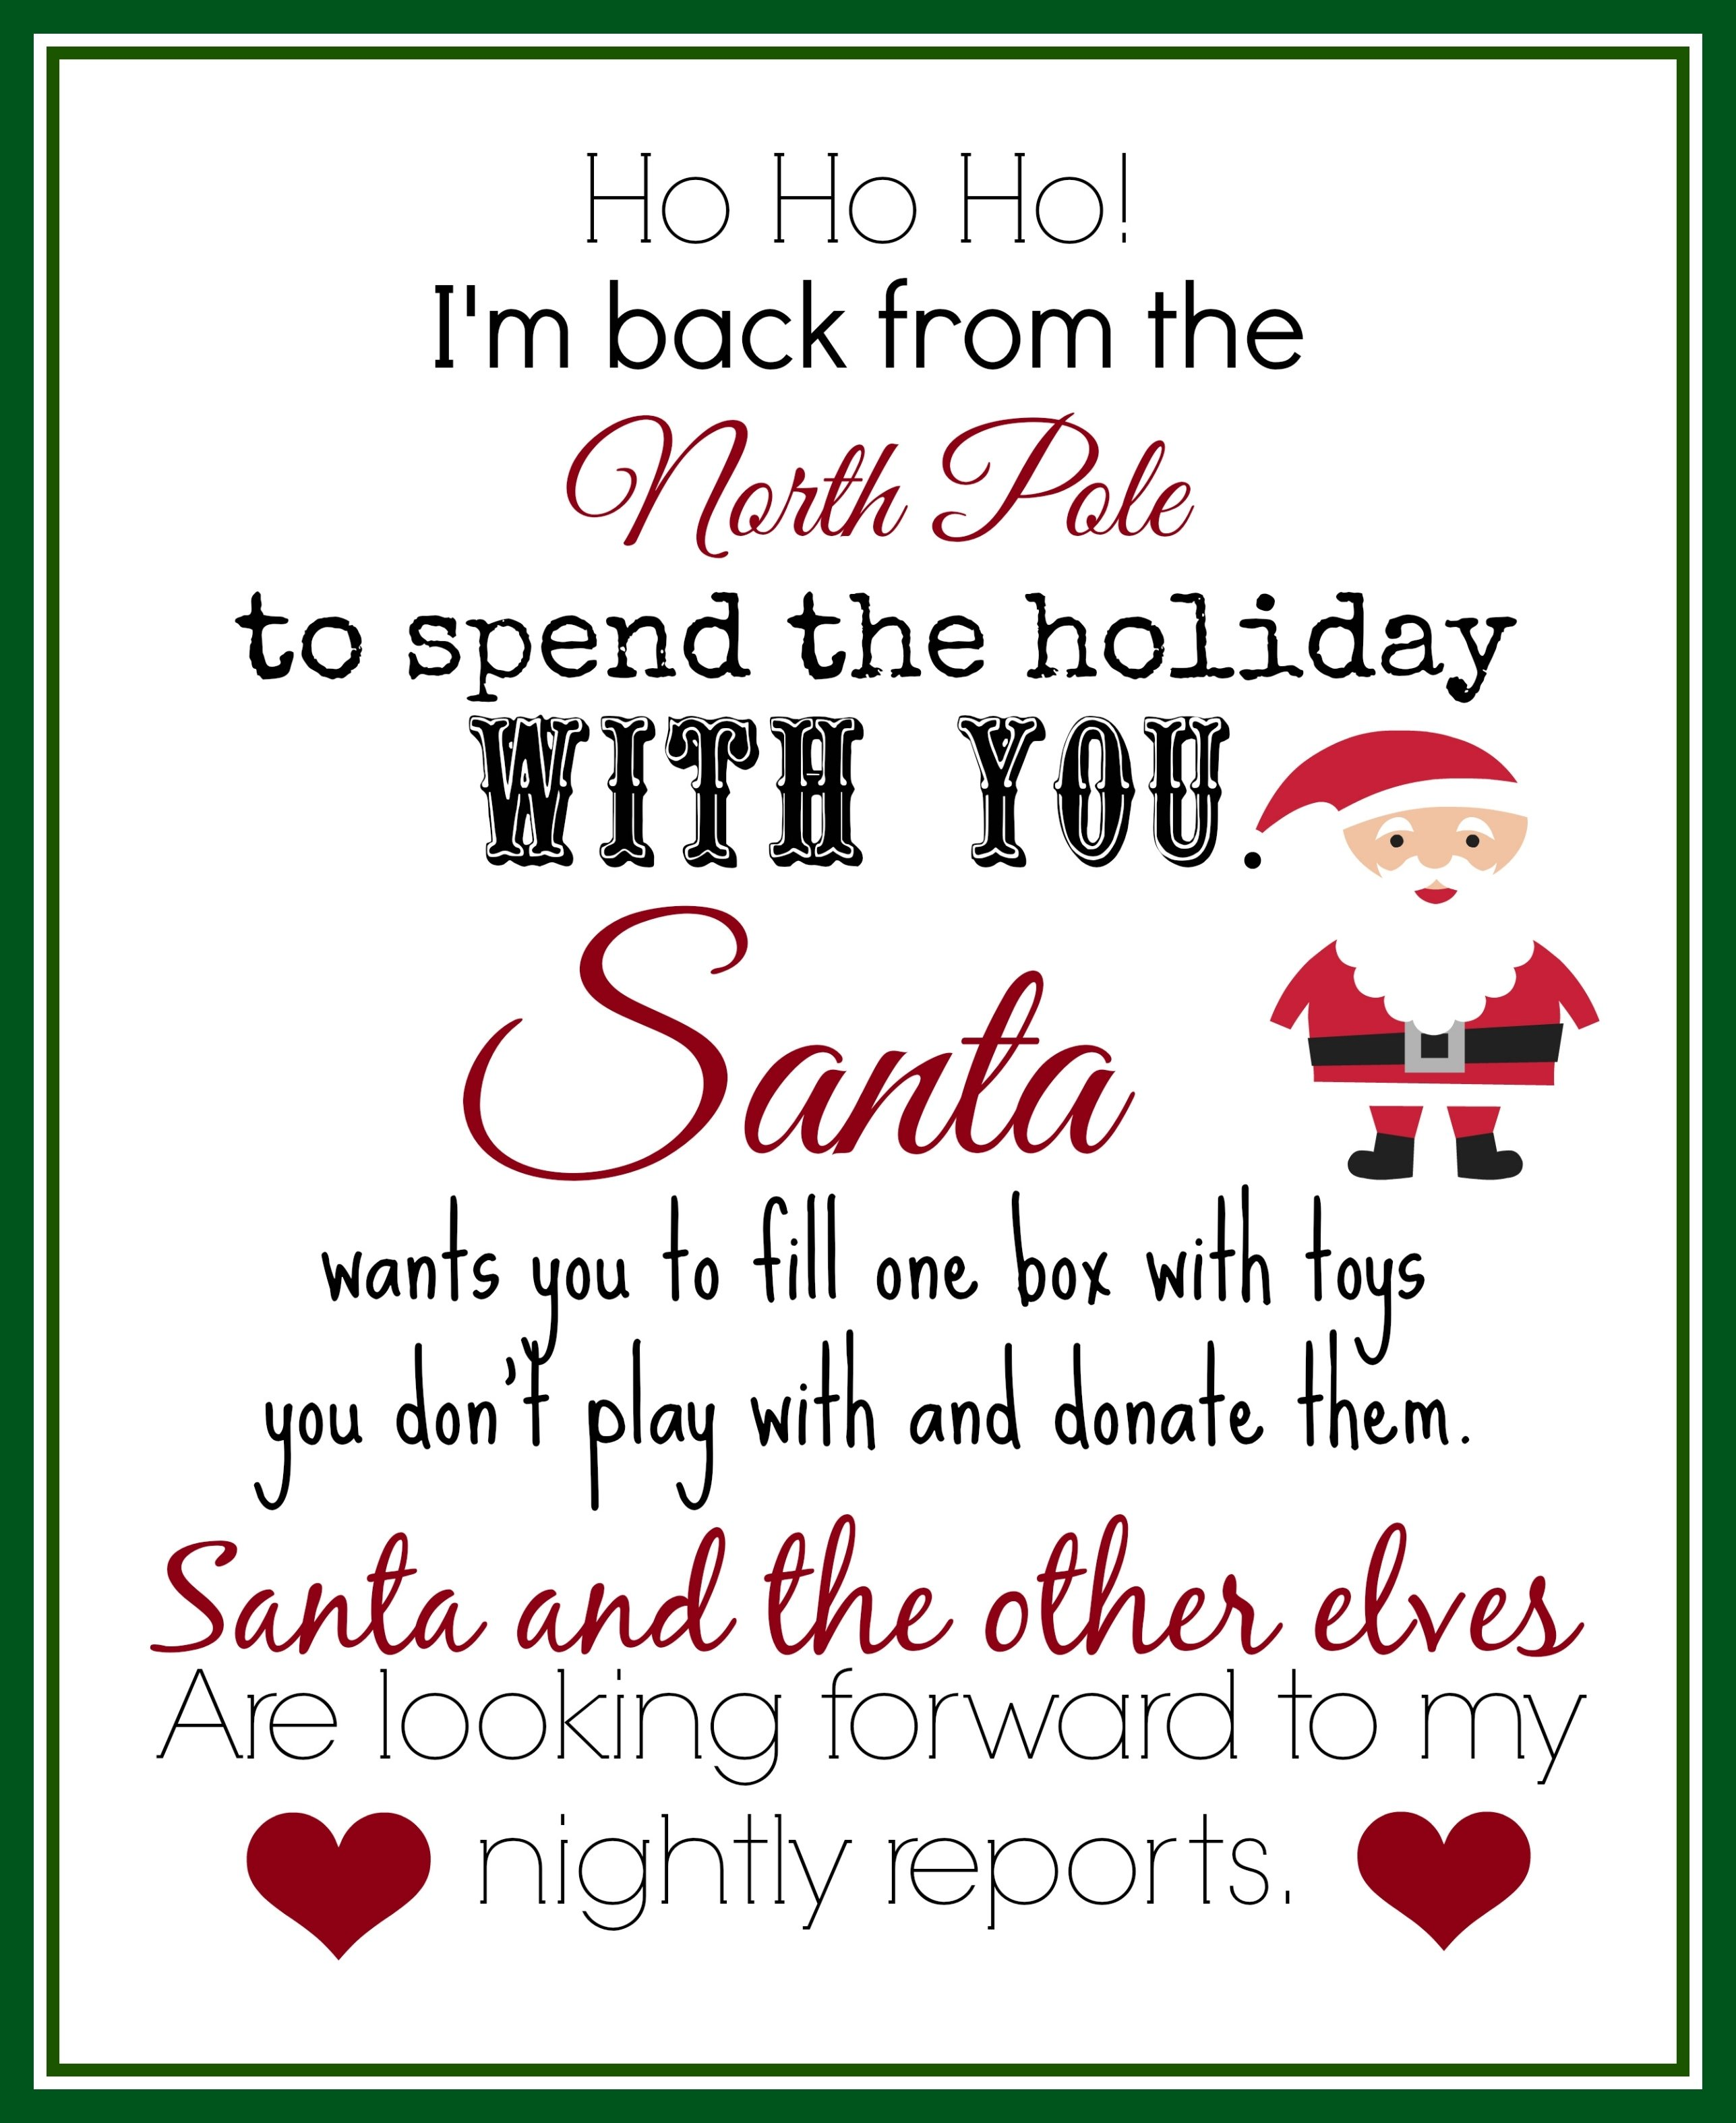 10 Stunning Letter From Elf On The Shelf Idea print this elf returns letter with instructions to donate toys 2020